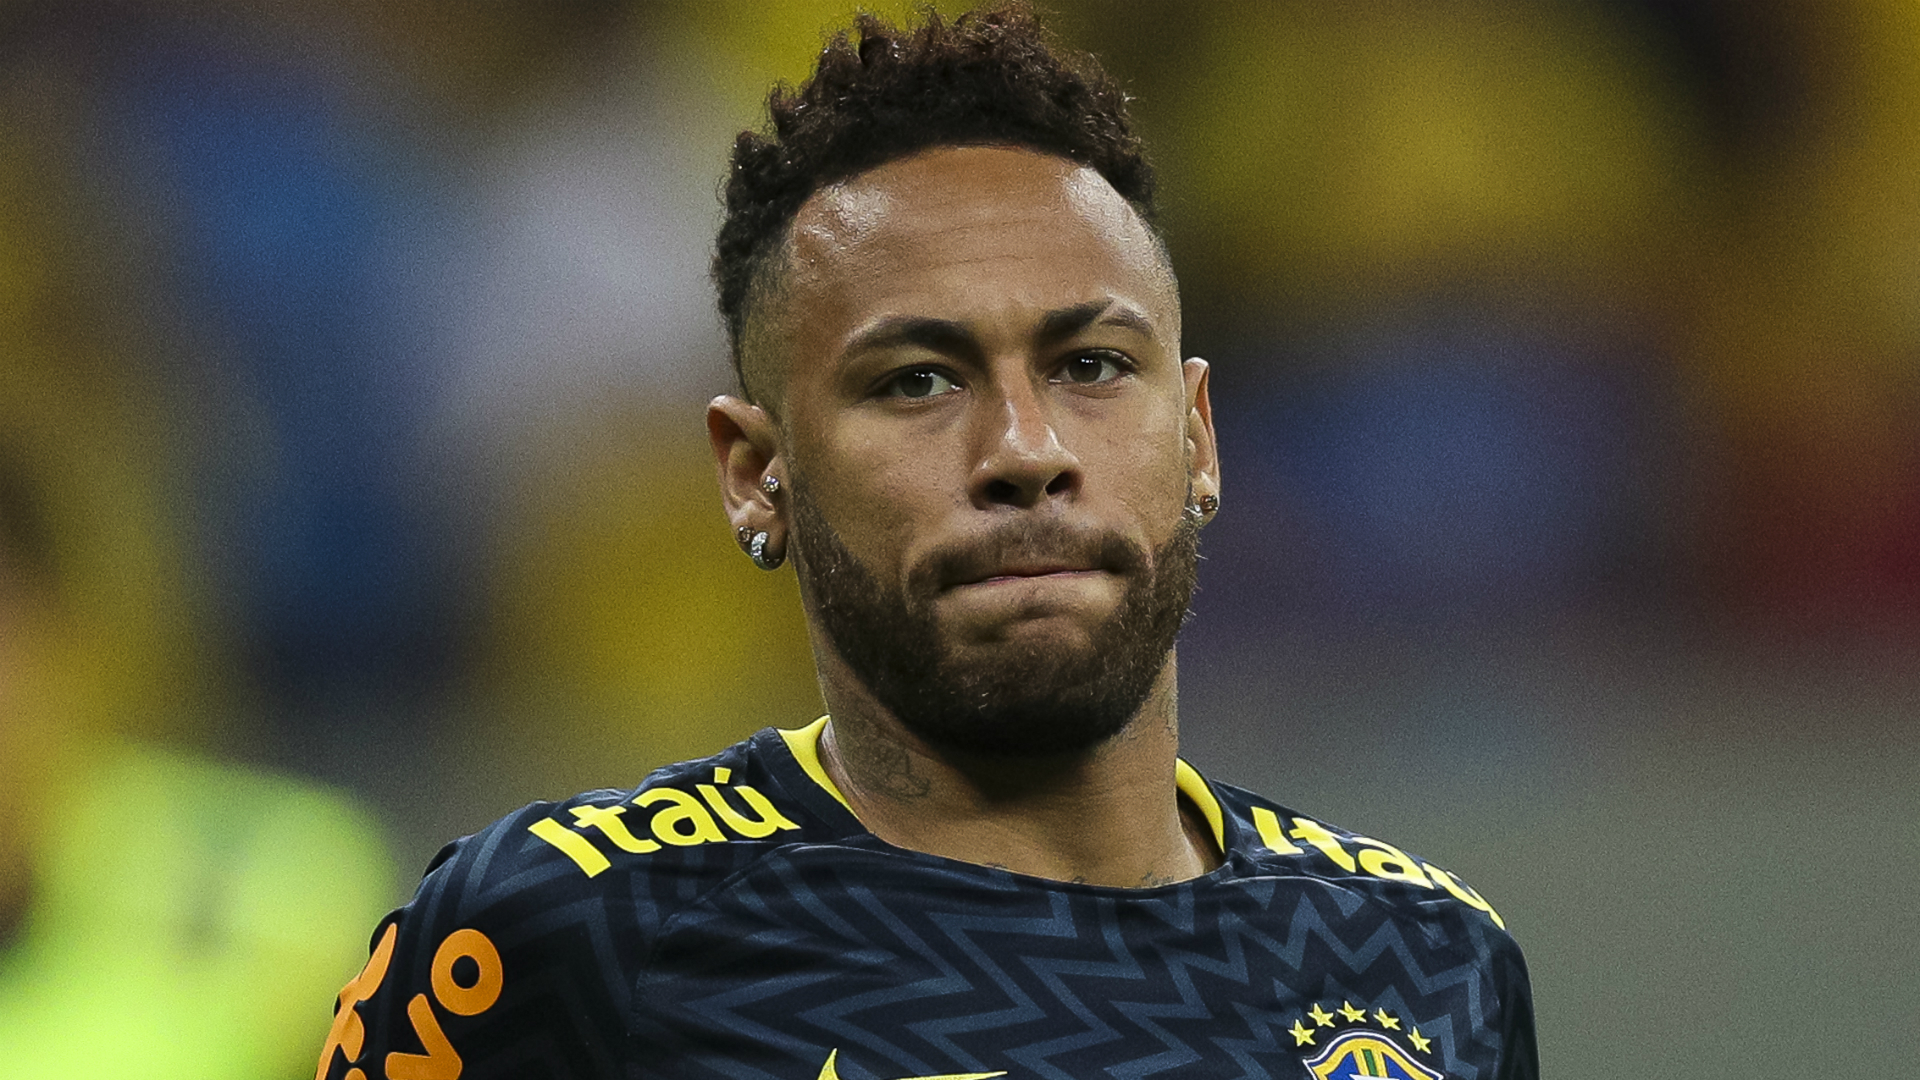 Leonardo, the man at the heart of Paris Saint-Germain's transfer wrangle with Neymar, has been given support by Tottenham's Lucas Moura.